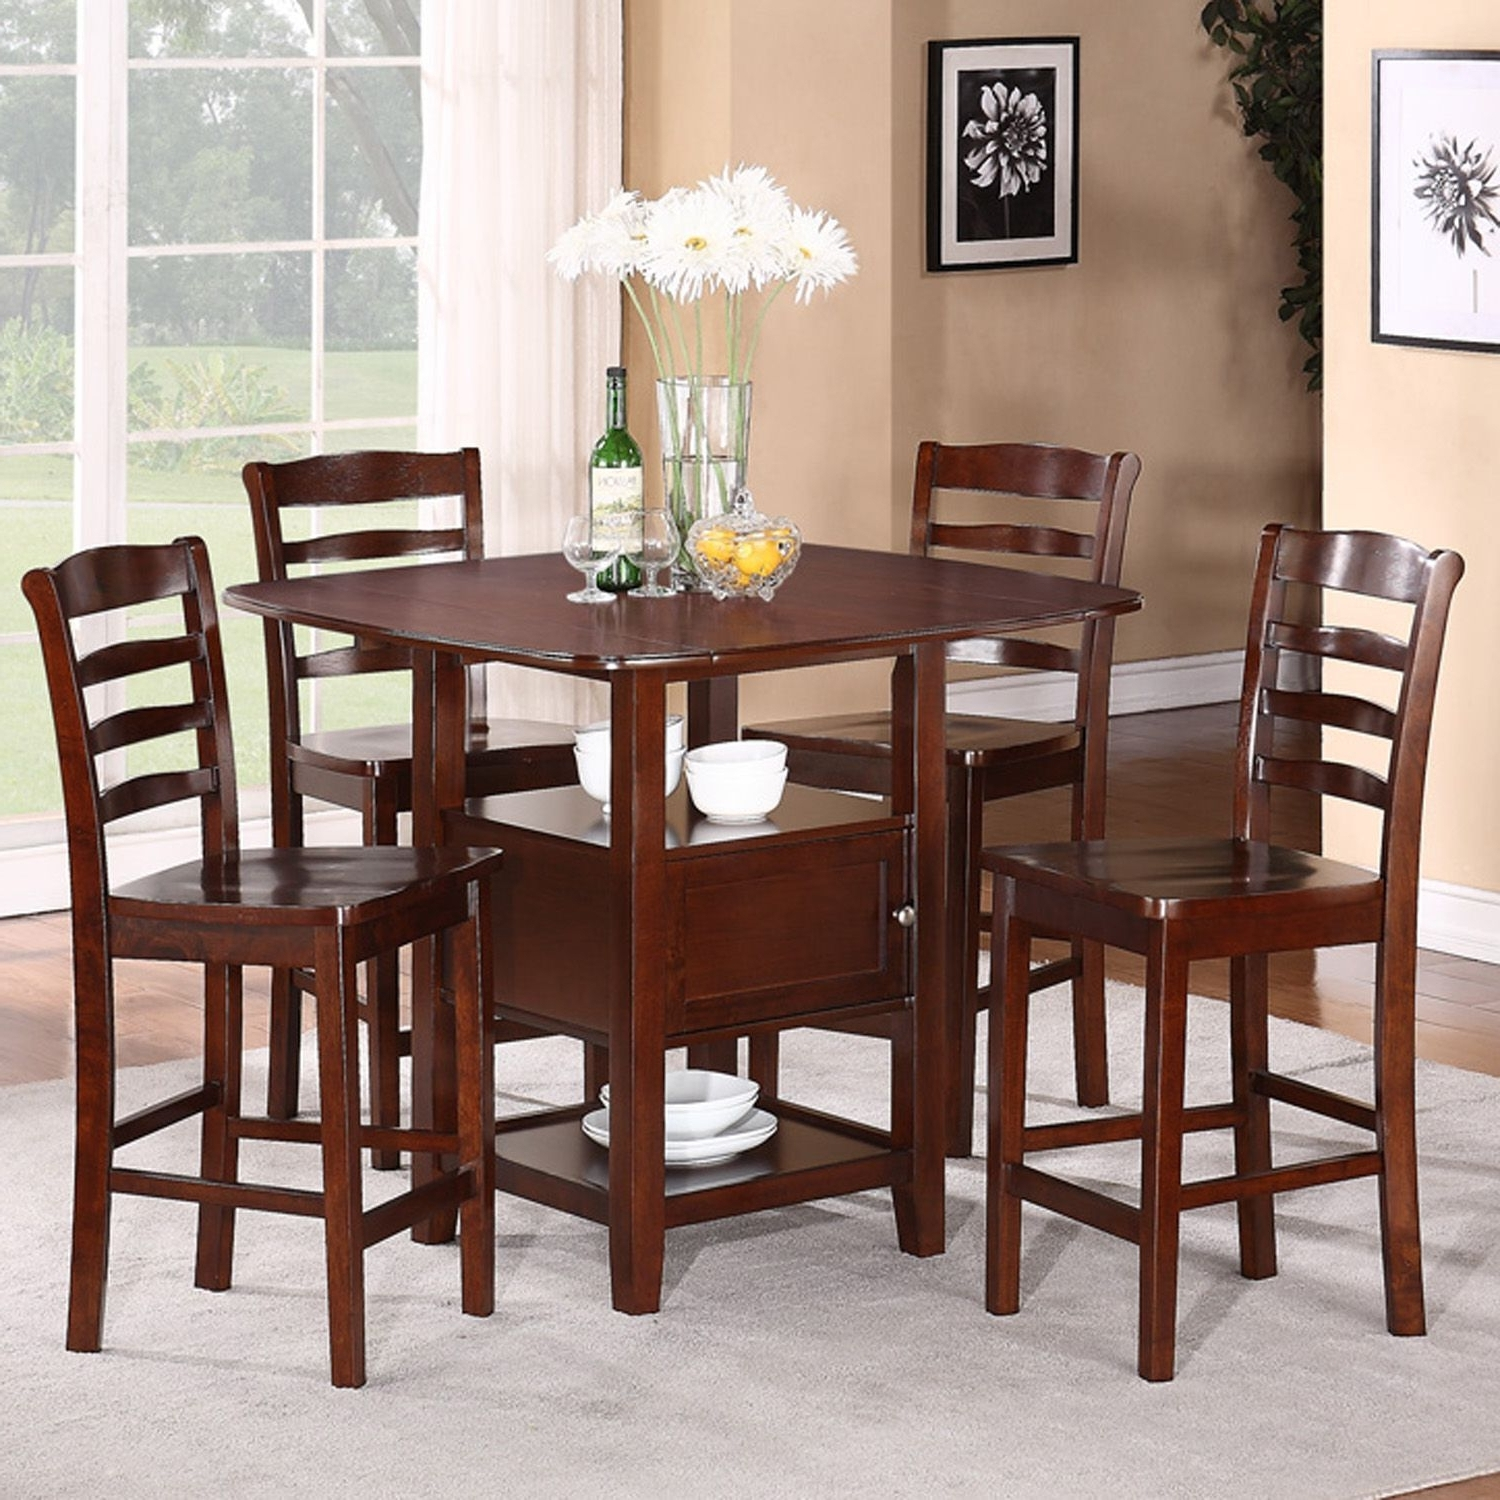 Widely Used Sears Round Dining Table Sets • Table Setting Ideas Regarding Craftsman Round Dining Tables (View 18 of 25)